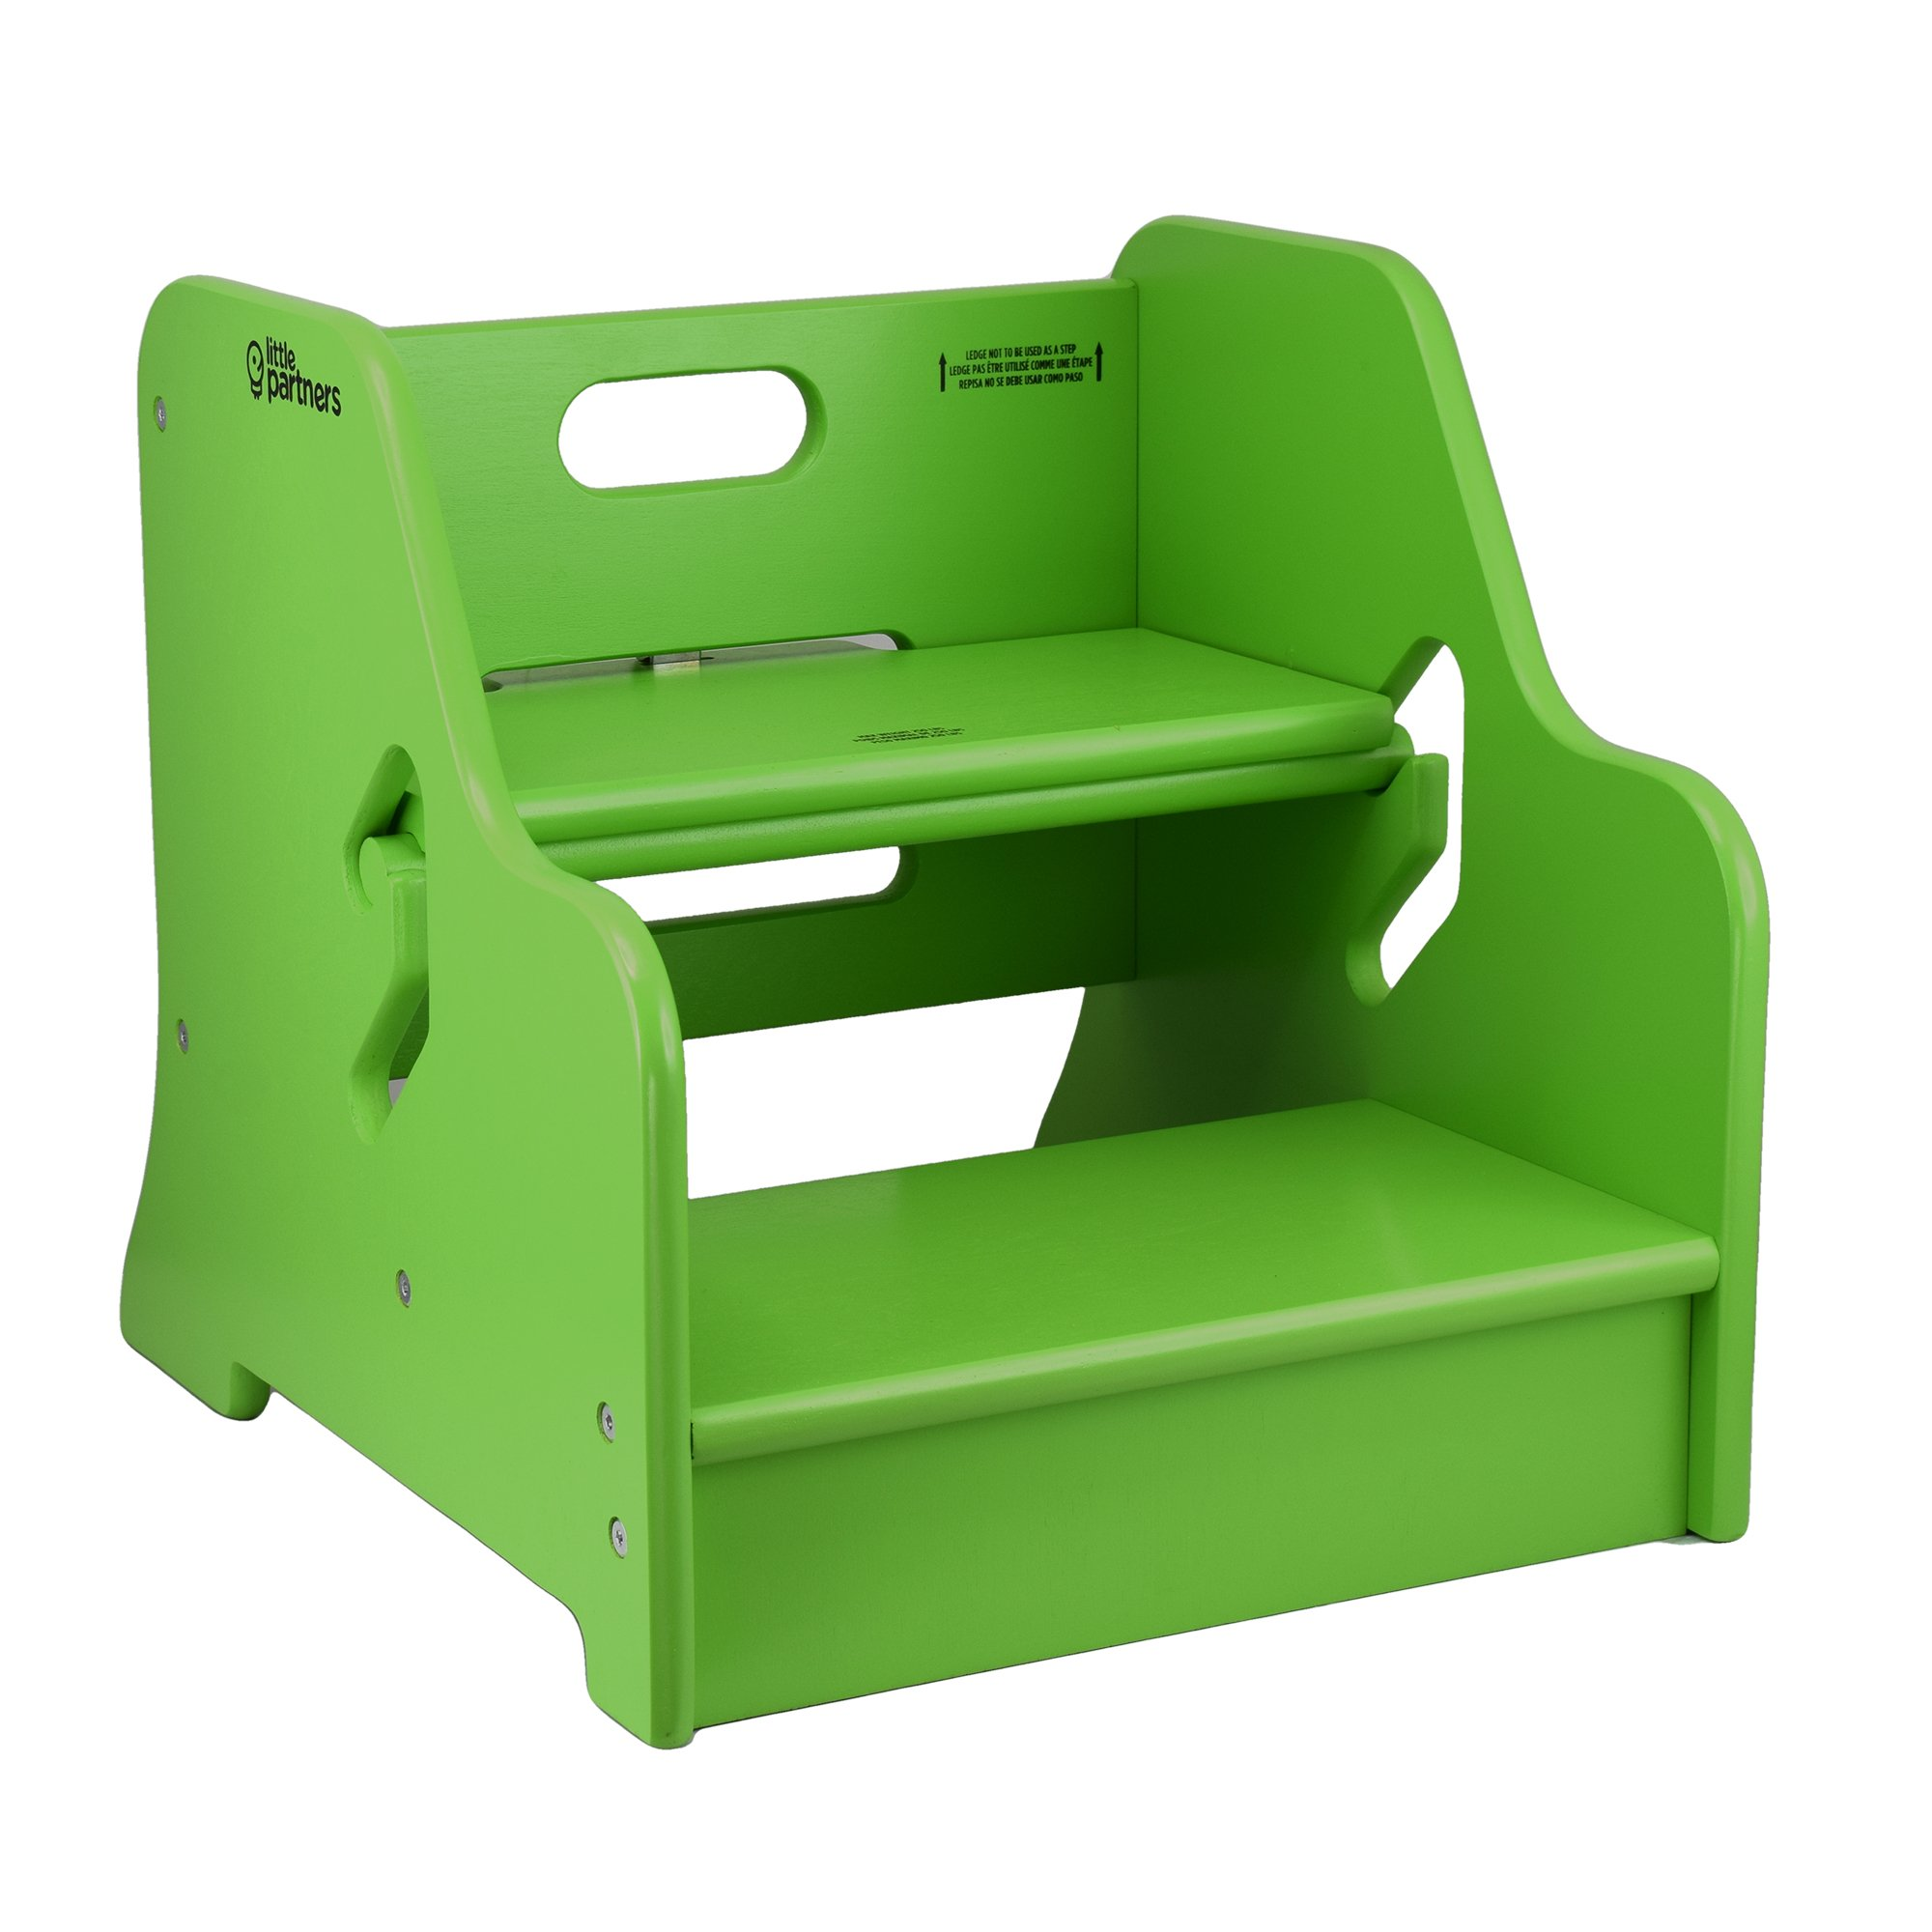 Miraculous Details About Little Partners Step Up Step Stool Apple Green Short Links Chair Design For Home Short Linksinfo